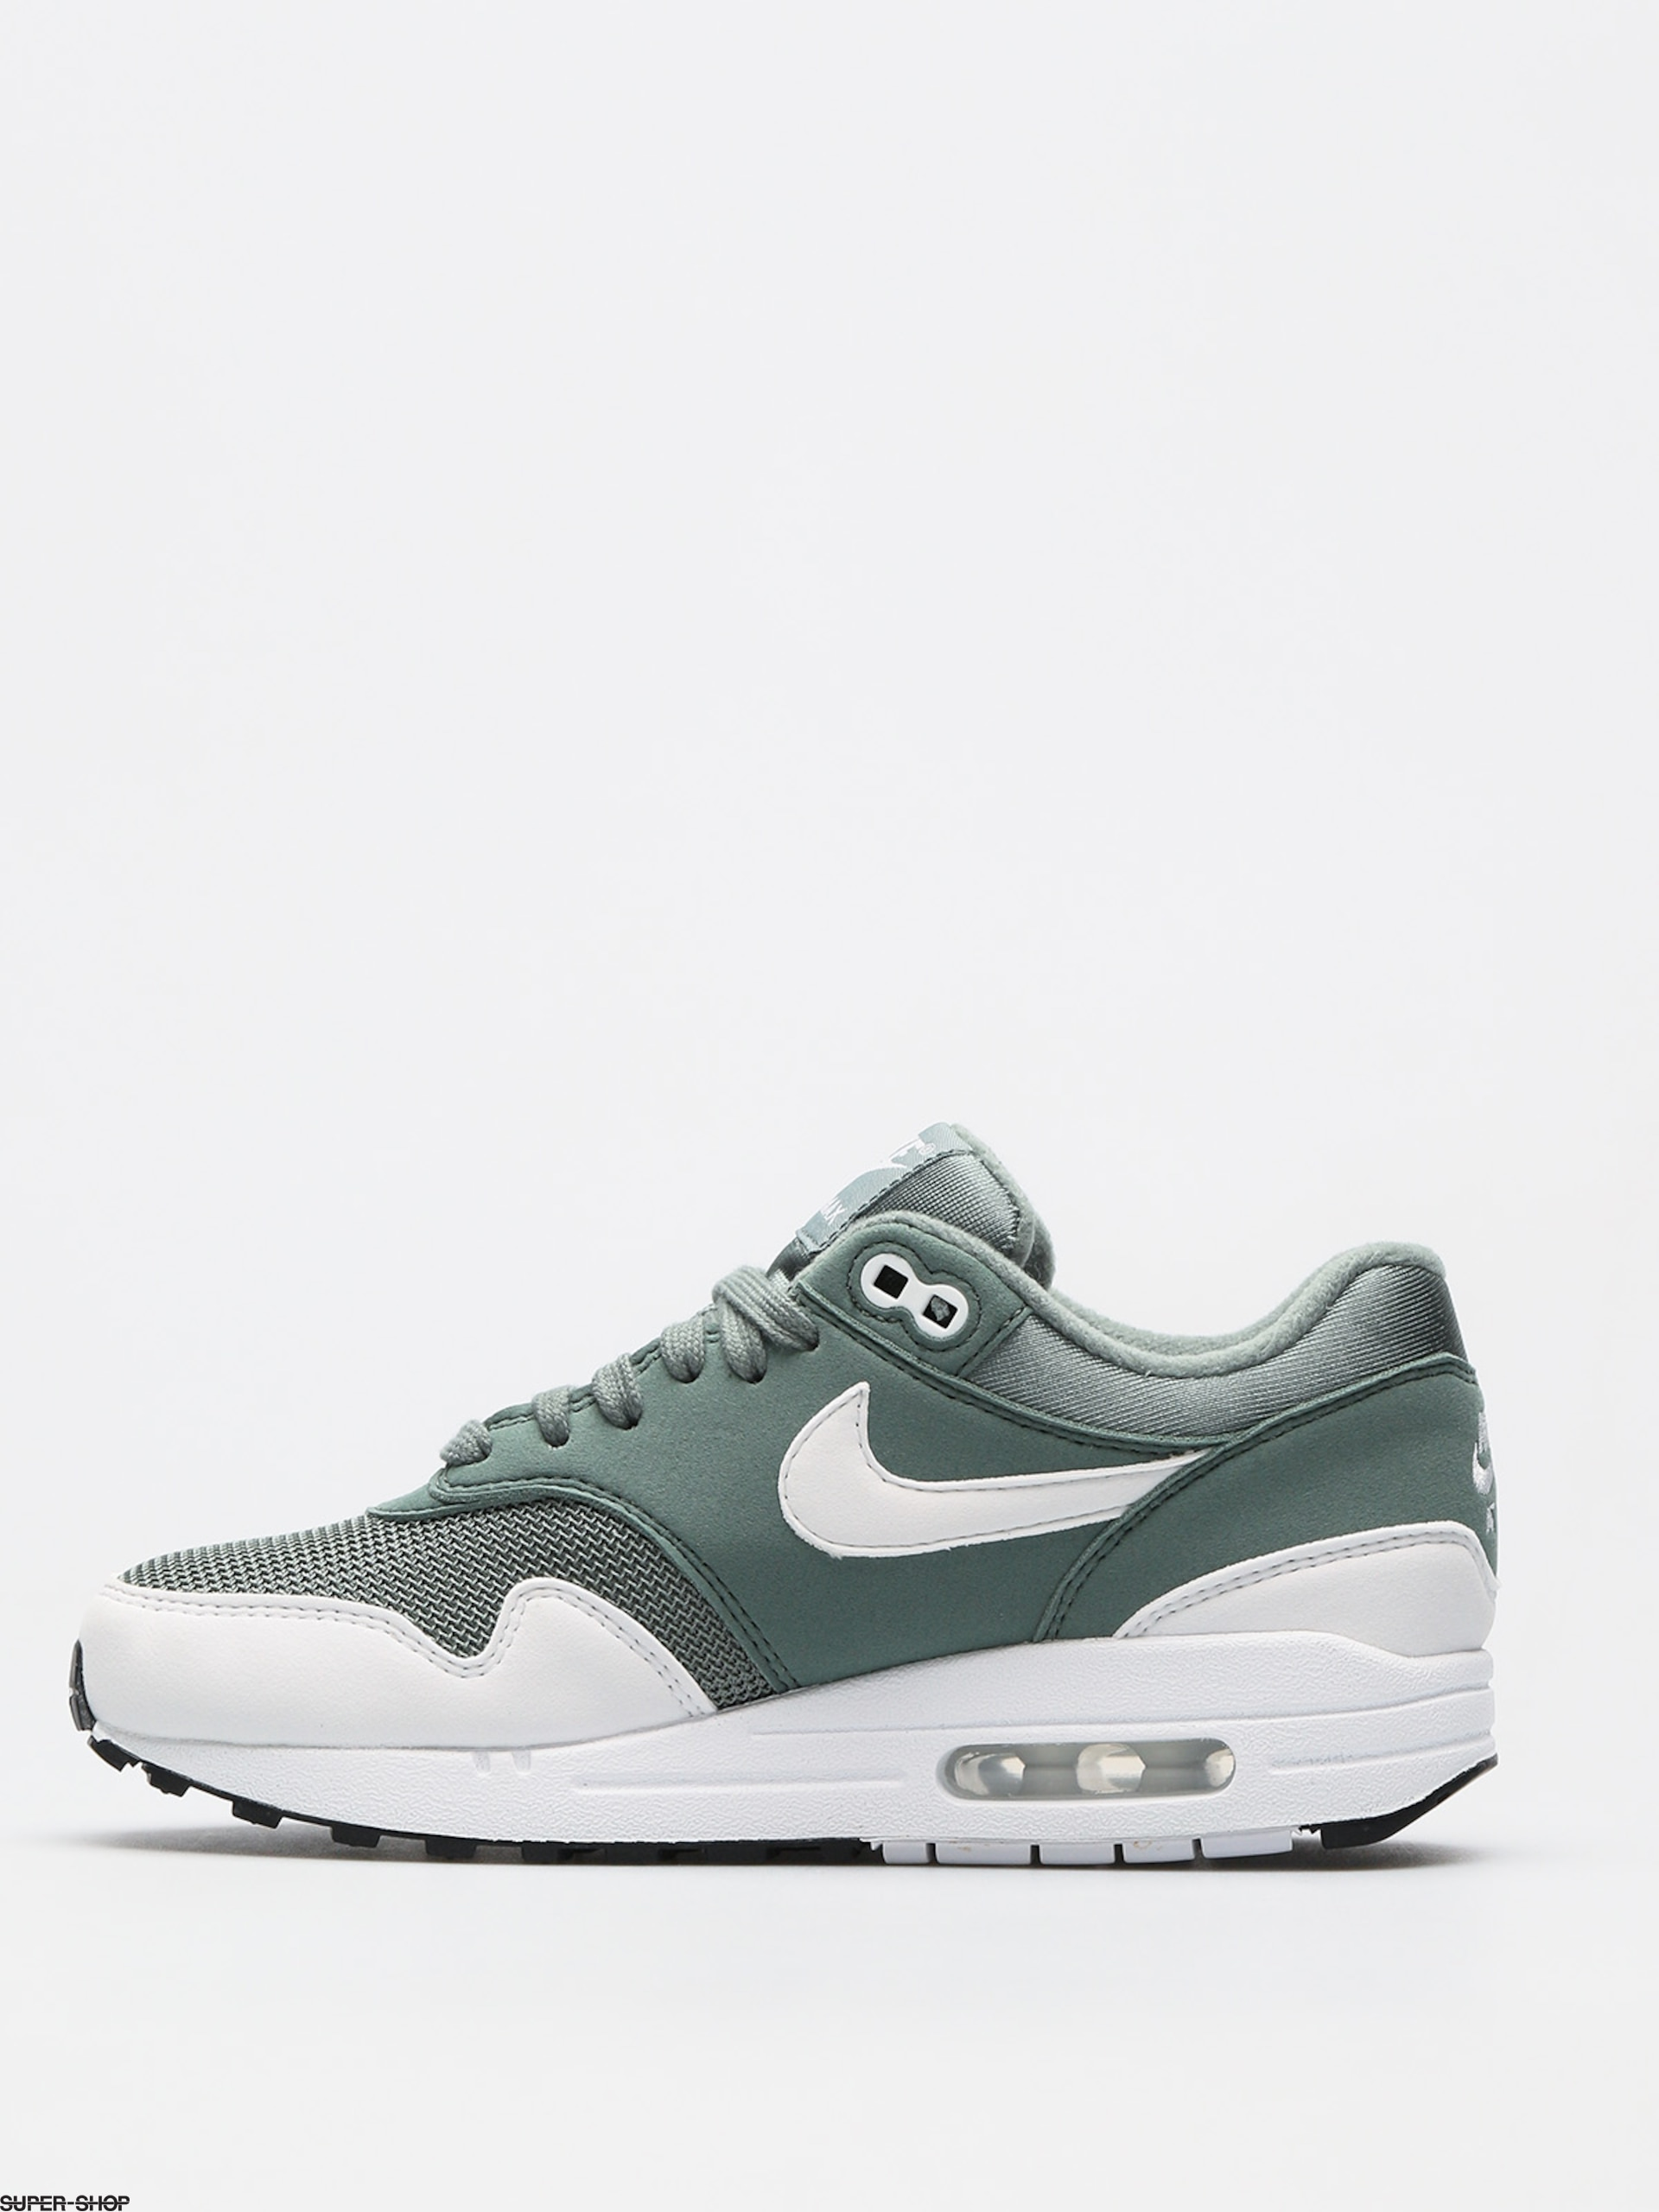 Nike Air Max 1 Shoes Wmn (clay green/white)